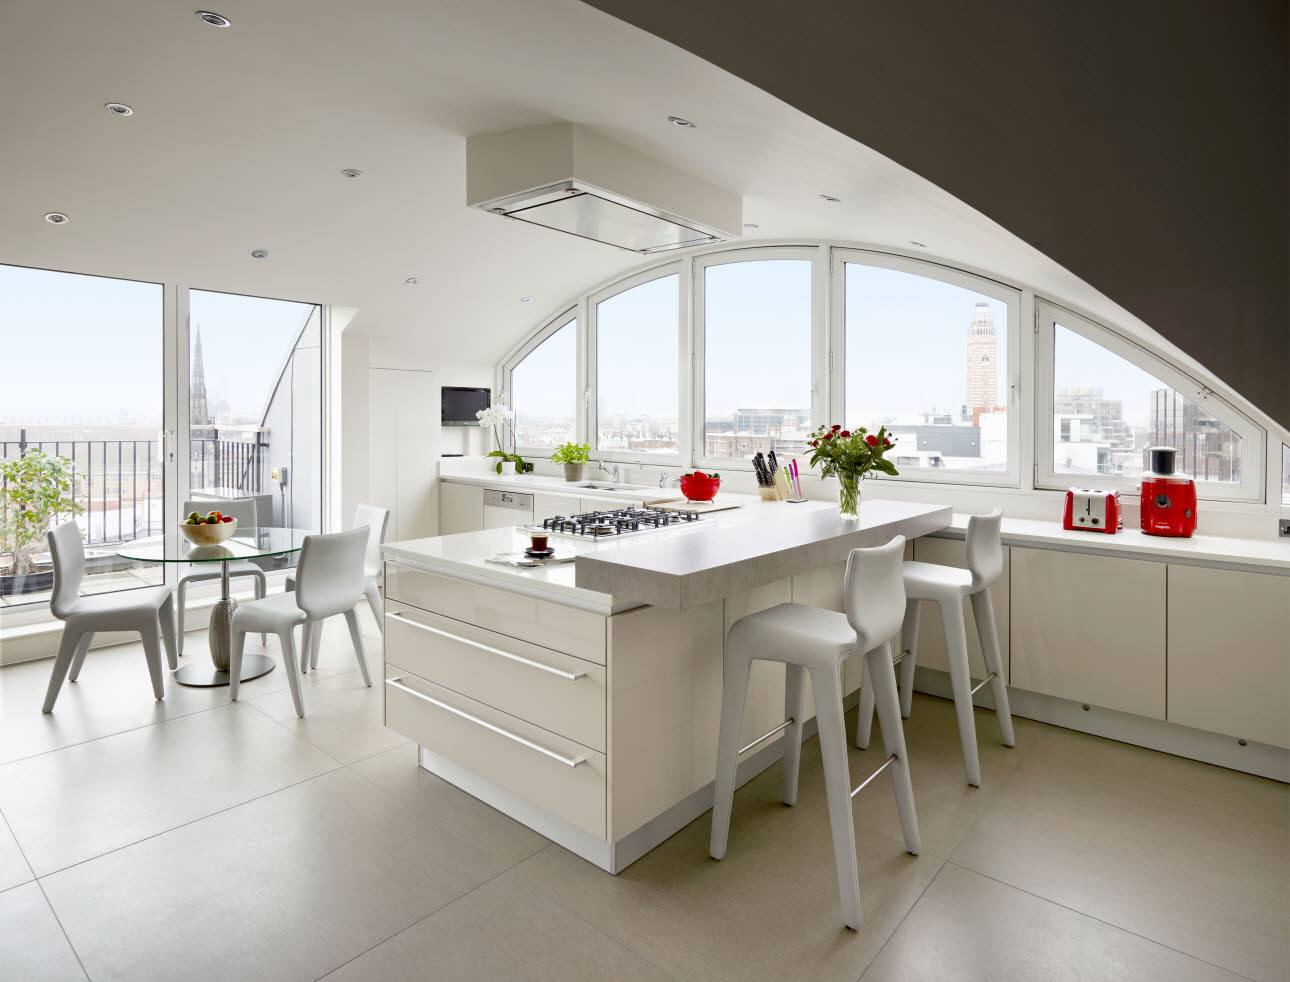 How Much Does a New Kitchen Cost? | Kitchen Magazine